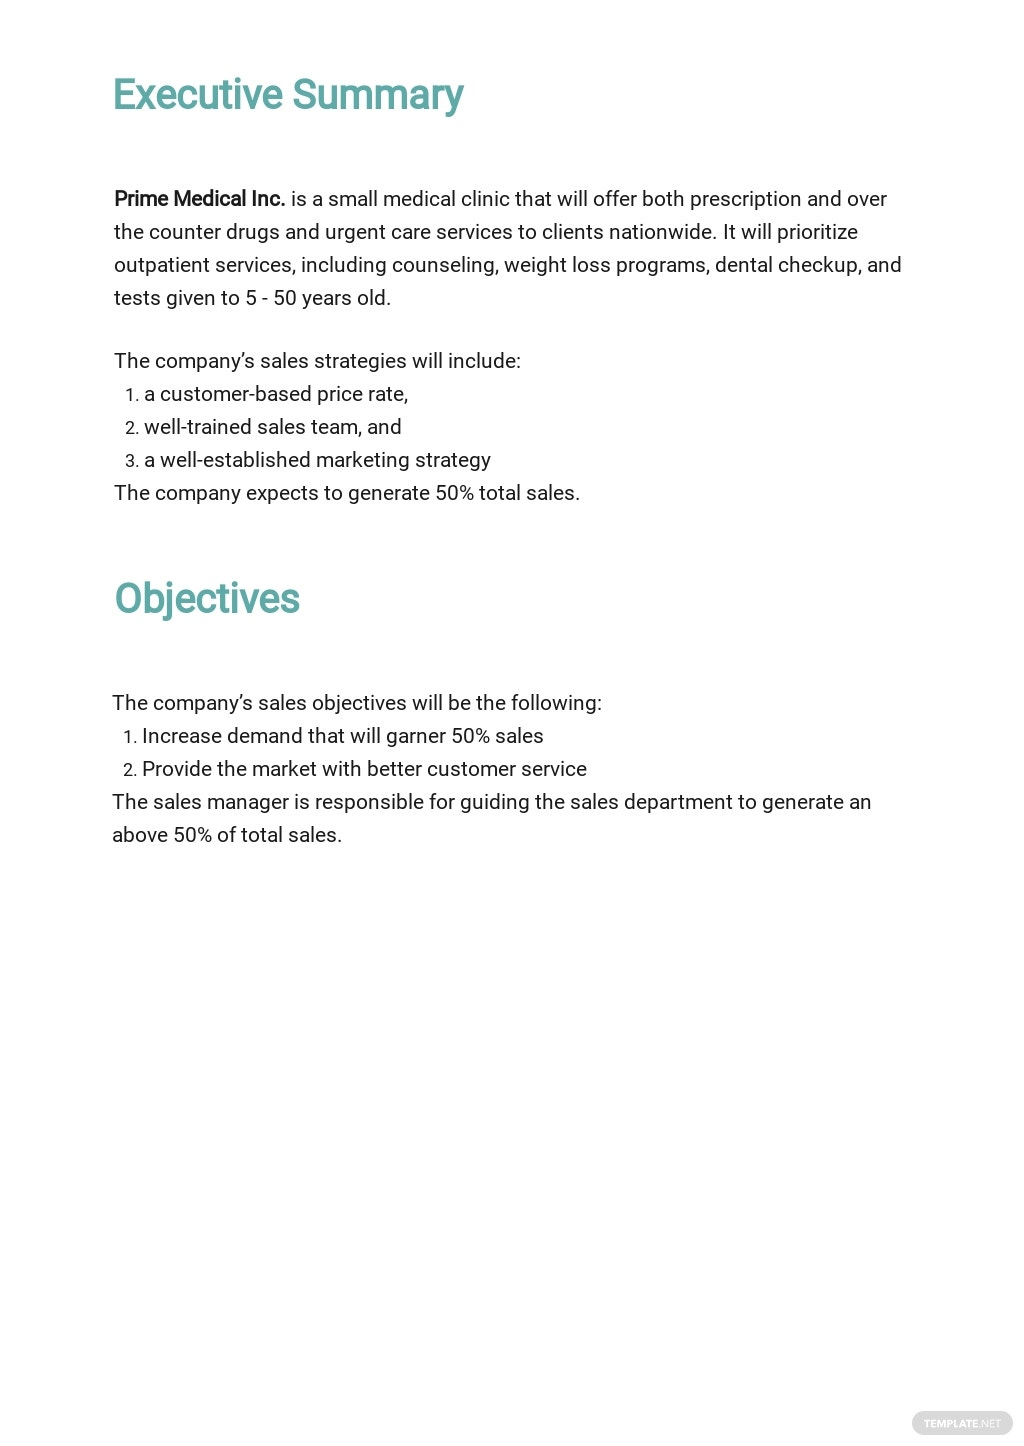 Medical Clinic Sales Plan Template 1.jpe